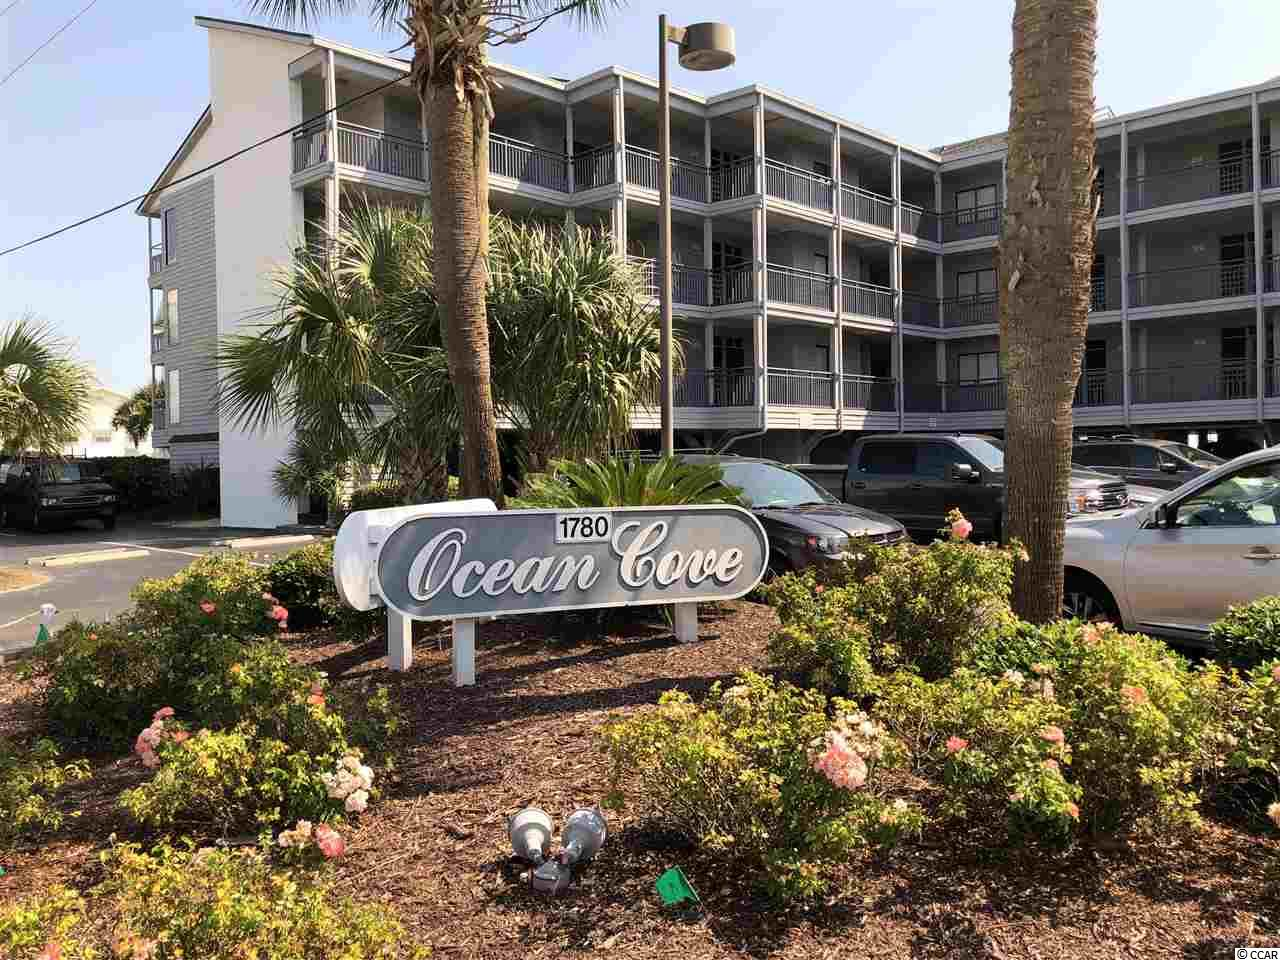 Located on top floor. A large skylight brightens the condo. New water heater. Full size washer & dryer in separate room by condo entrance replaced less than 2 years ago. Owners closet in unit. 2 balconies with ocean views, one is screened. Square footage is approximate and up to the buyer and buyer's agent to verify. Ocean Cove is a complex much in demand, with a beautiful pool and hot tub.